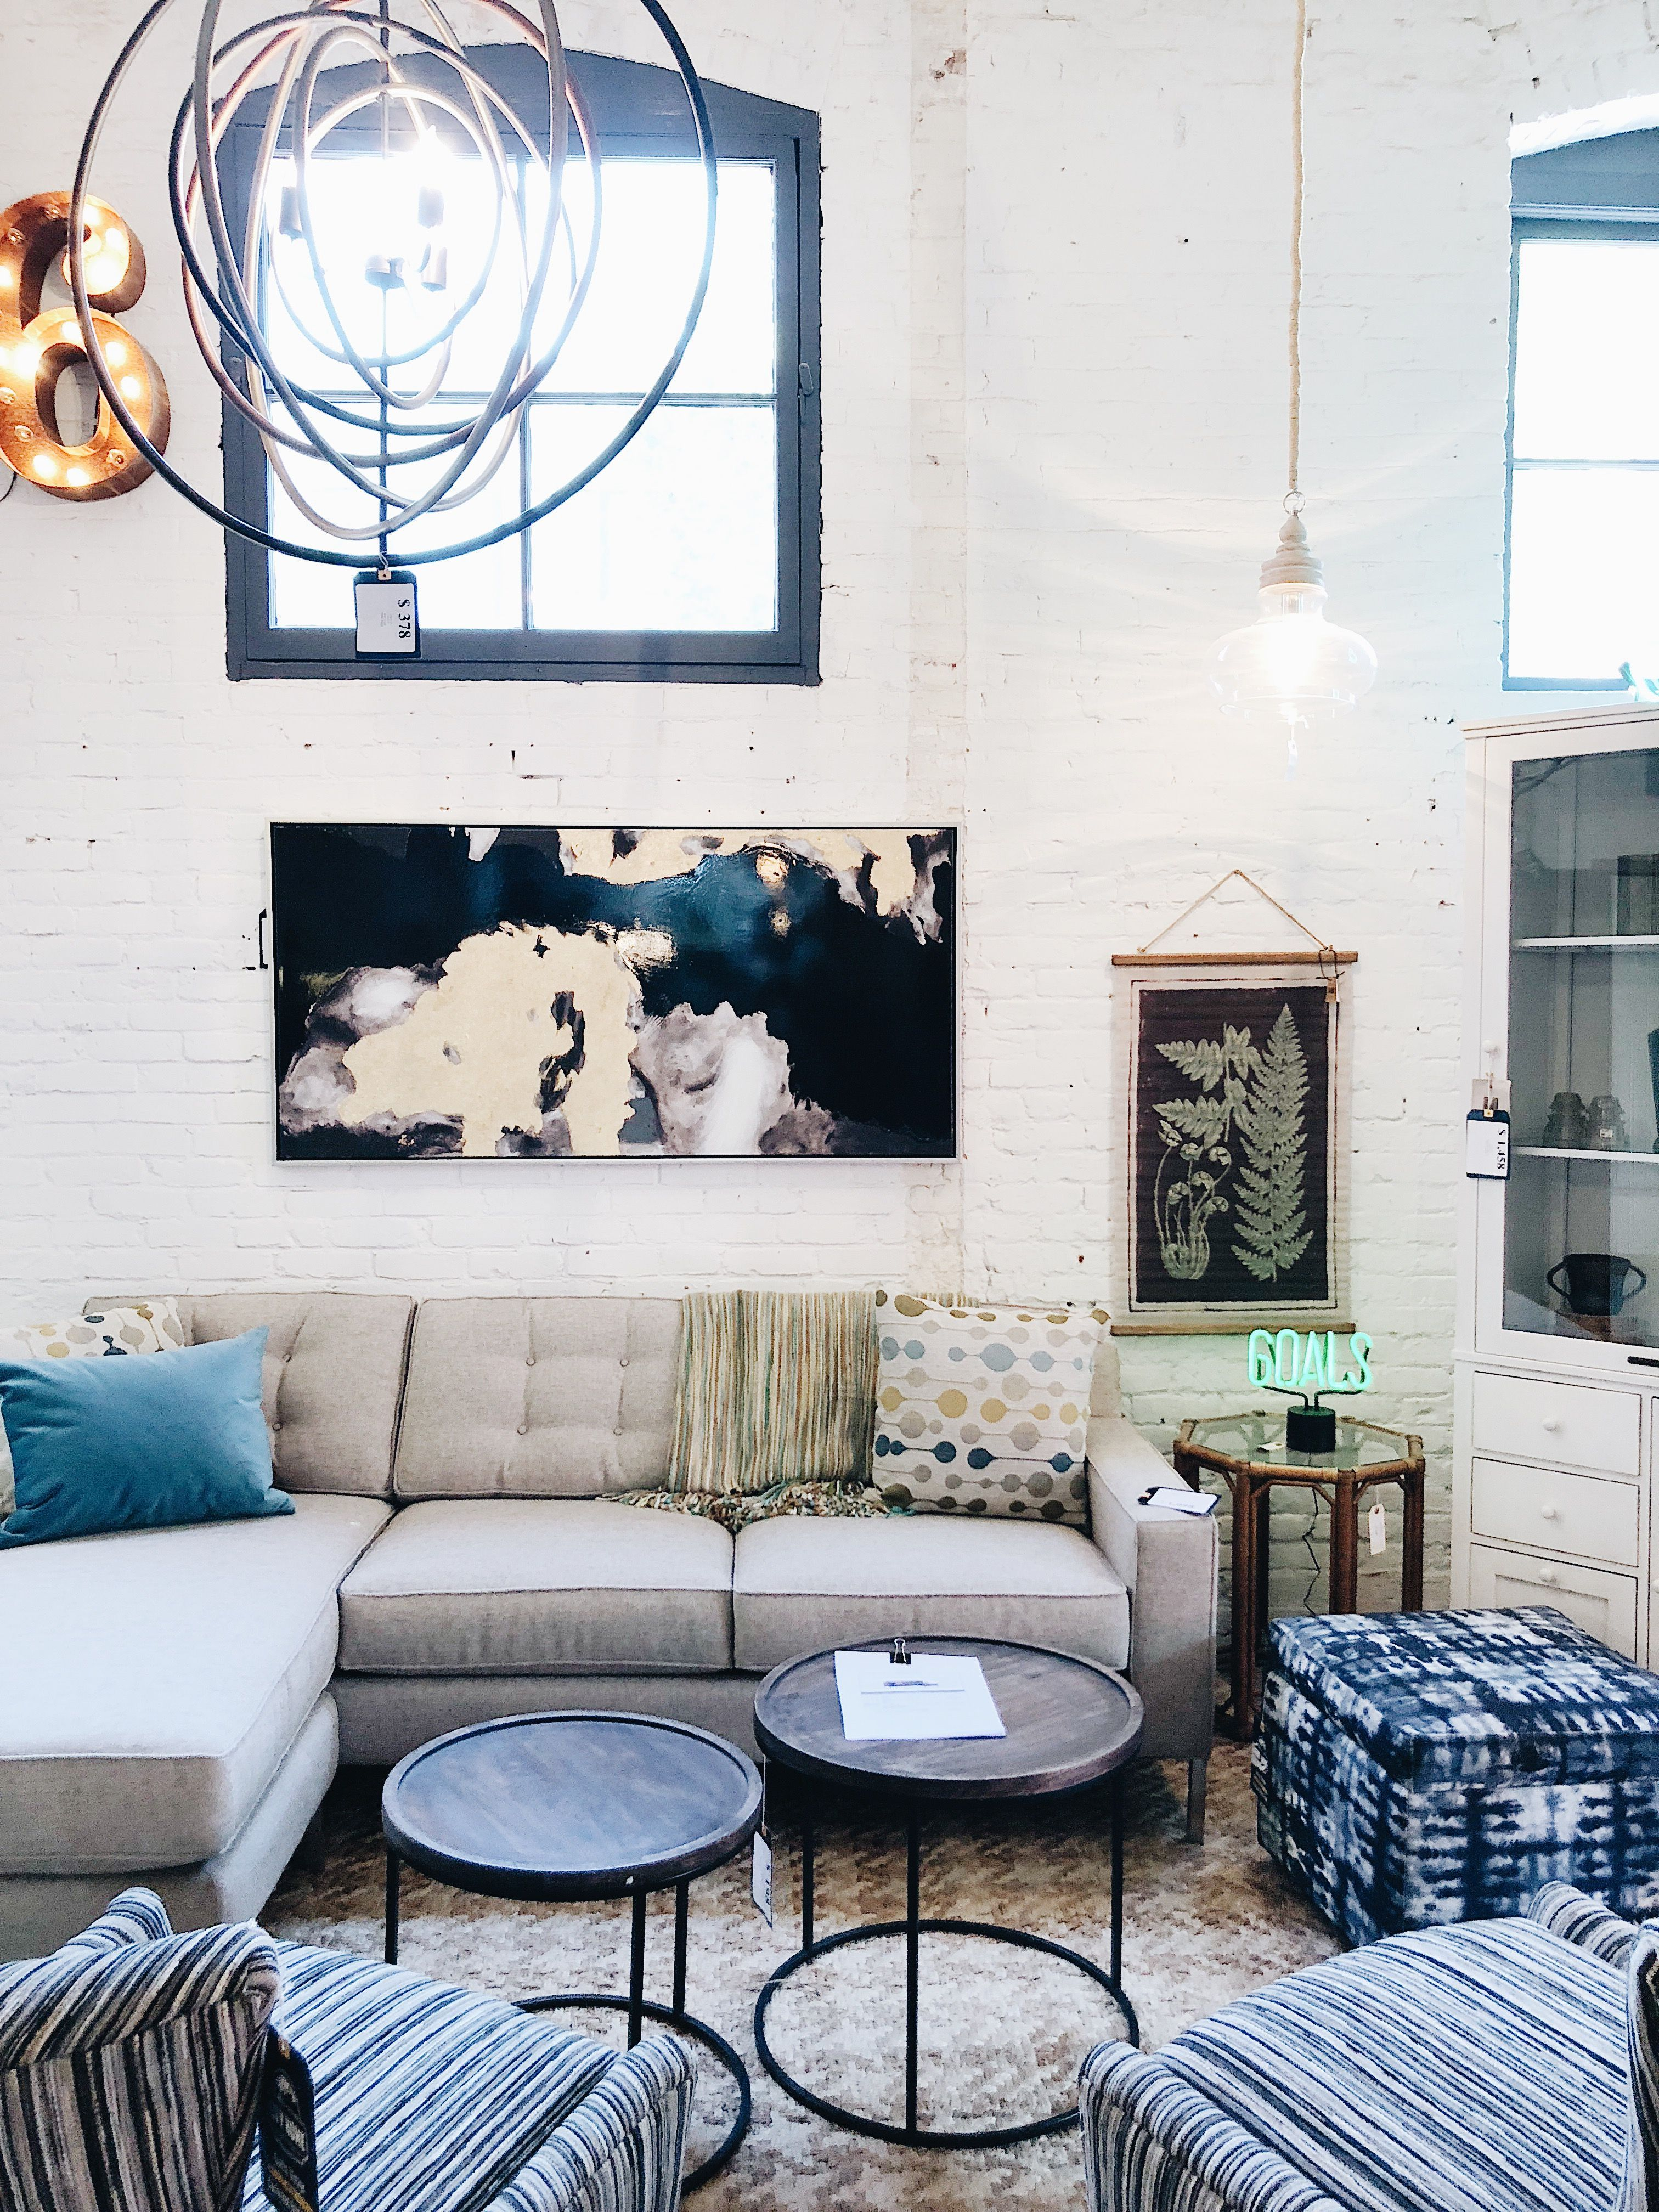 Furniture And Home Decor Goals At City Home In Portland Home Decor Furniture Home